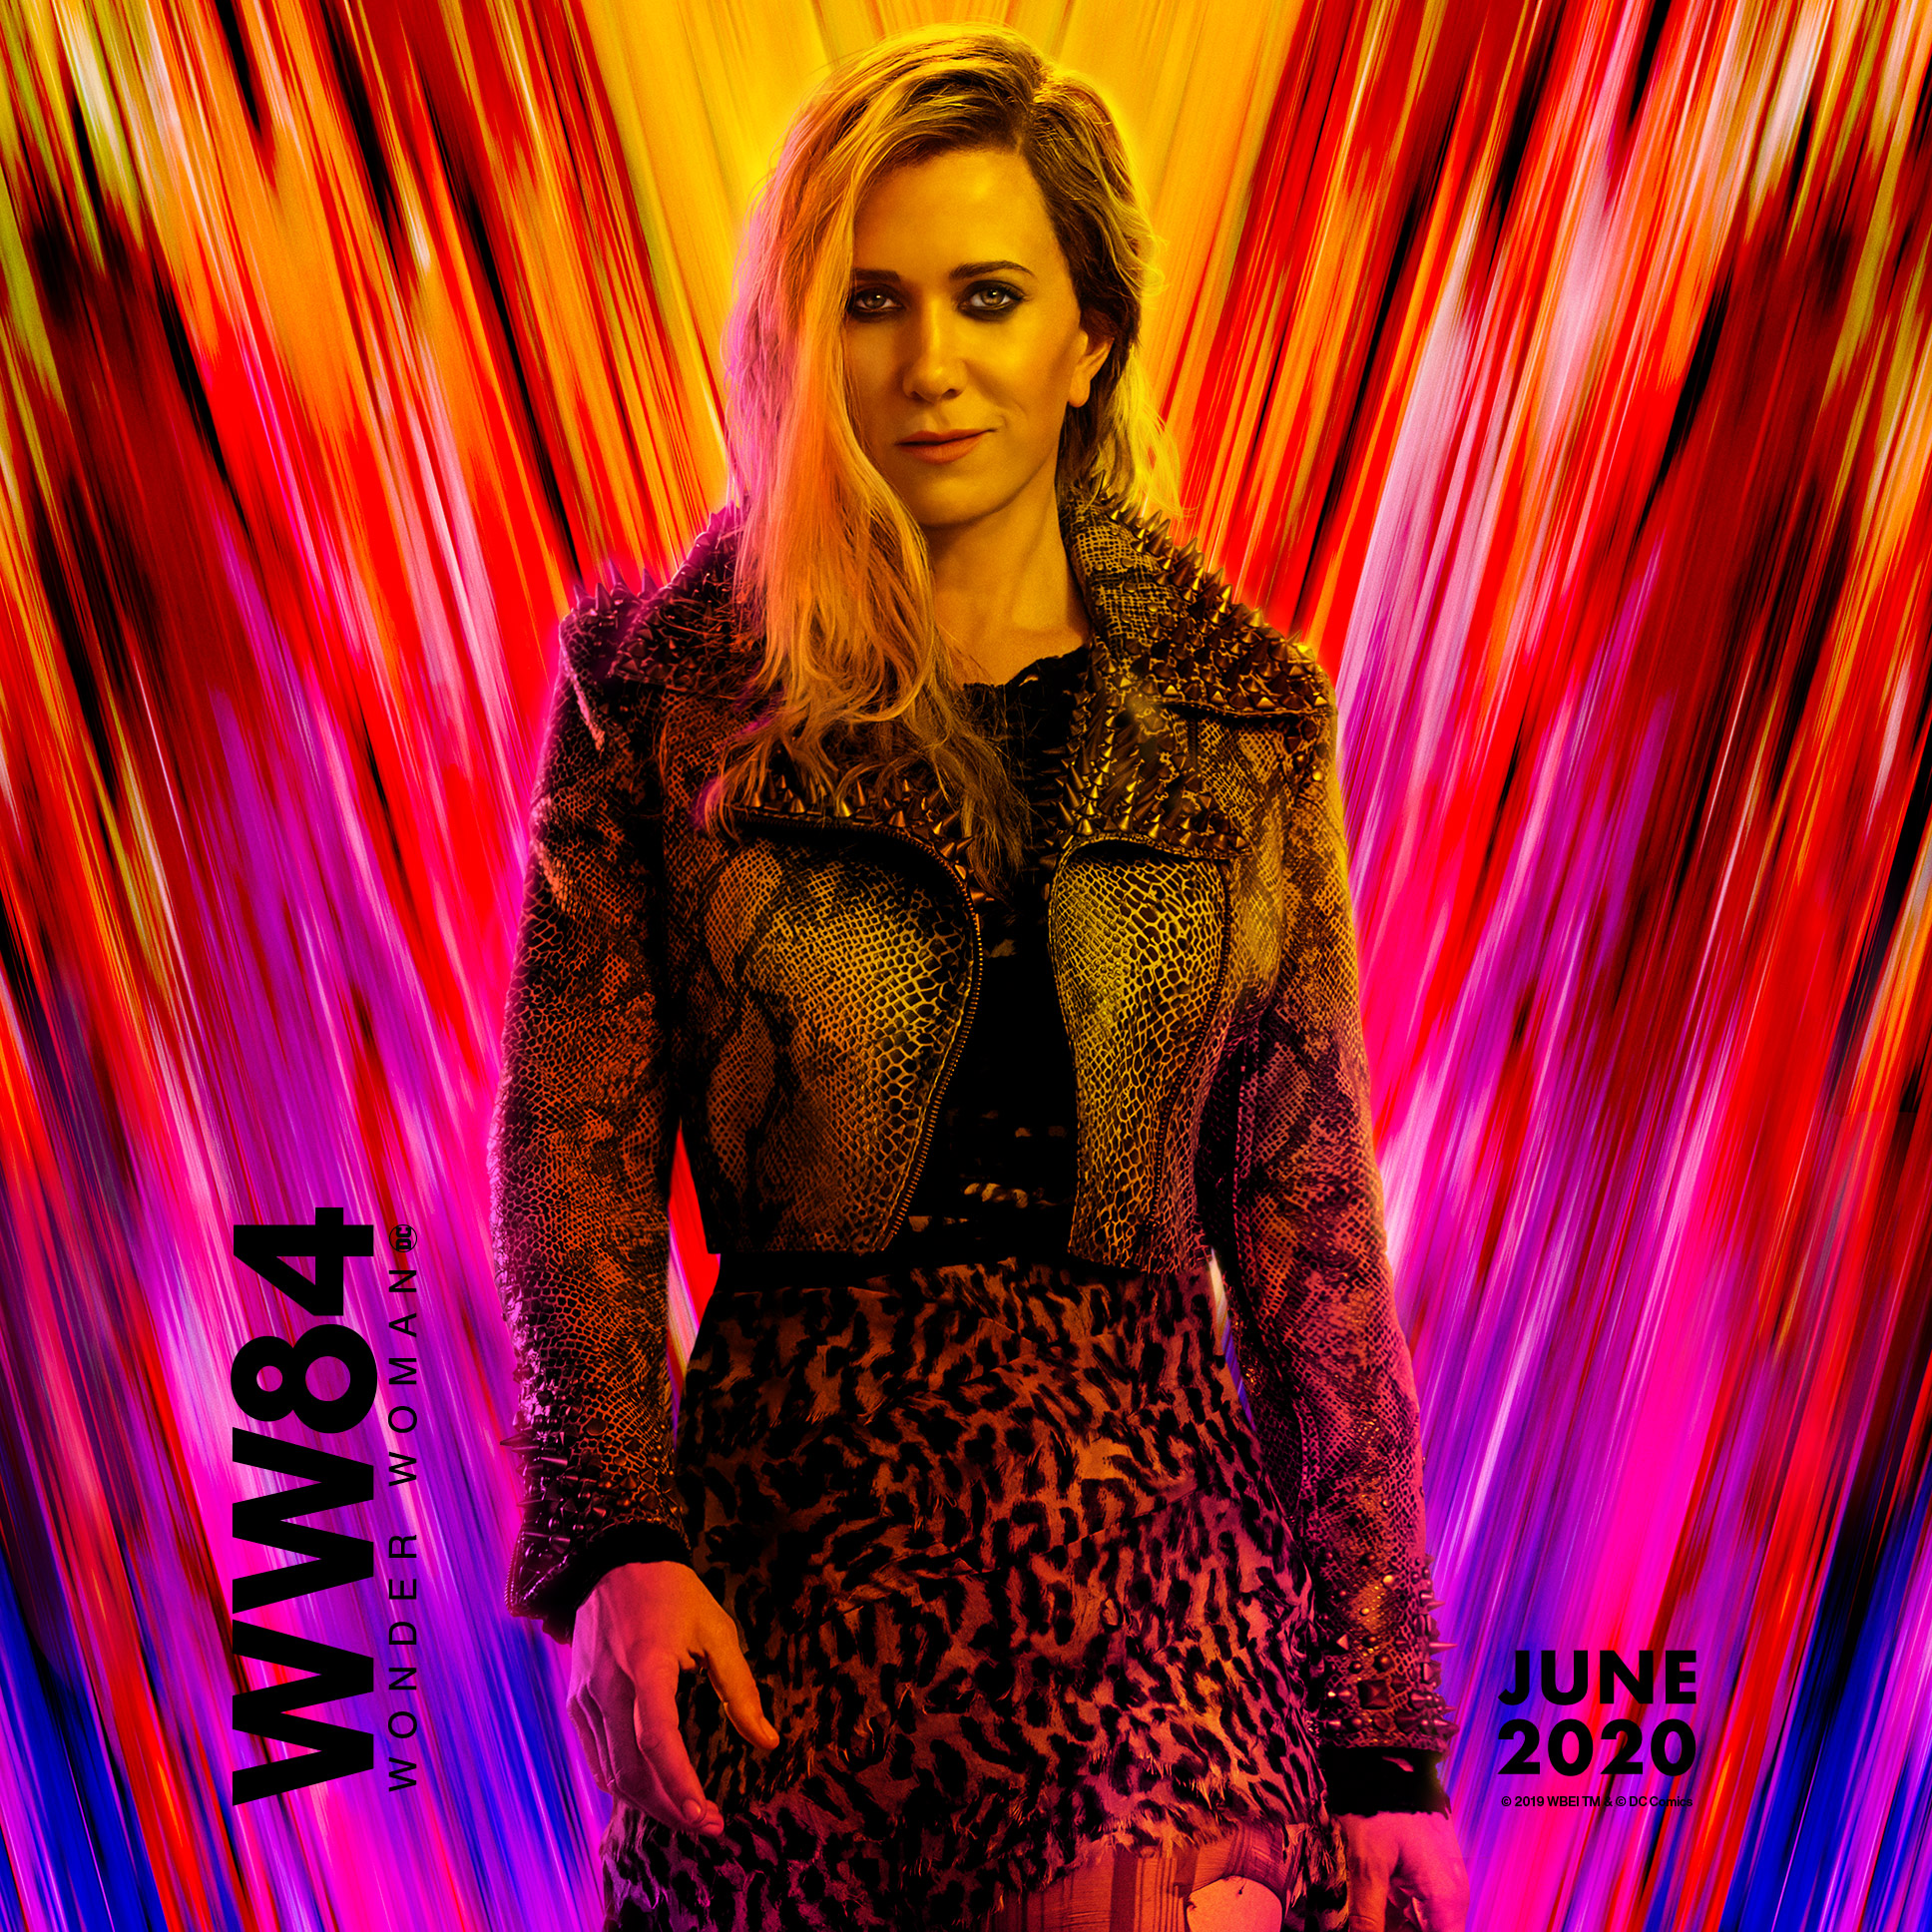 Wonder Woman 1984 - Character Portrait - Kristen Wiig as Barbara Minerva